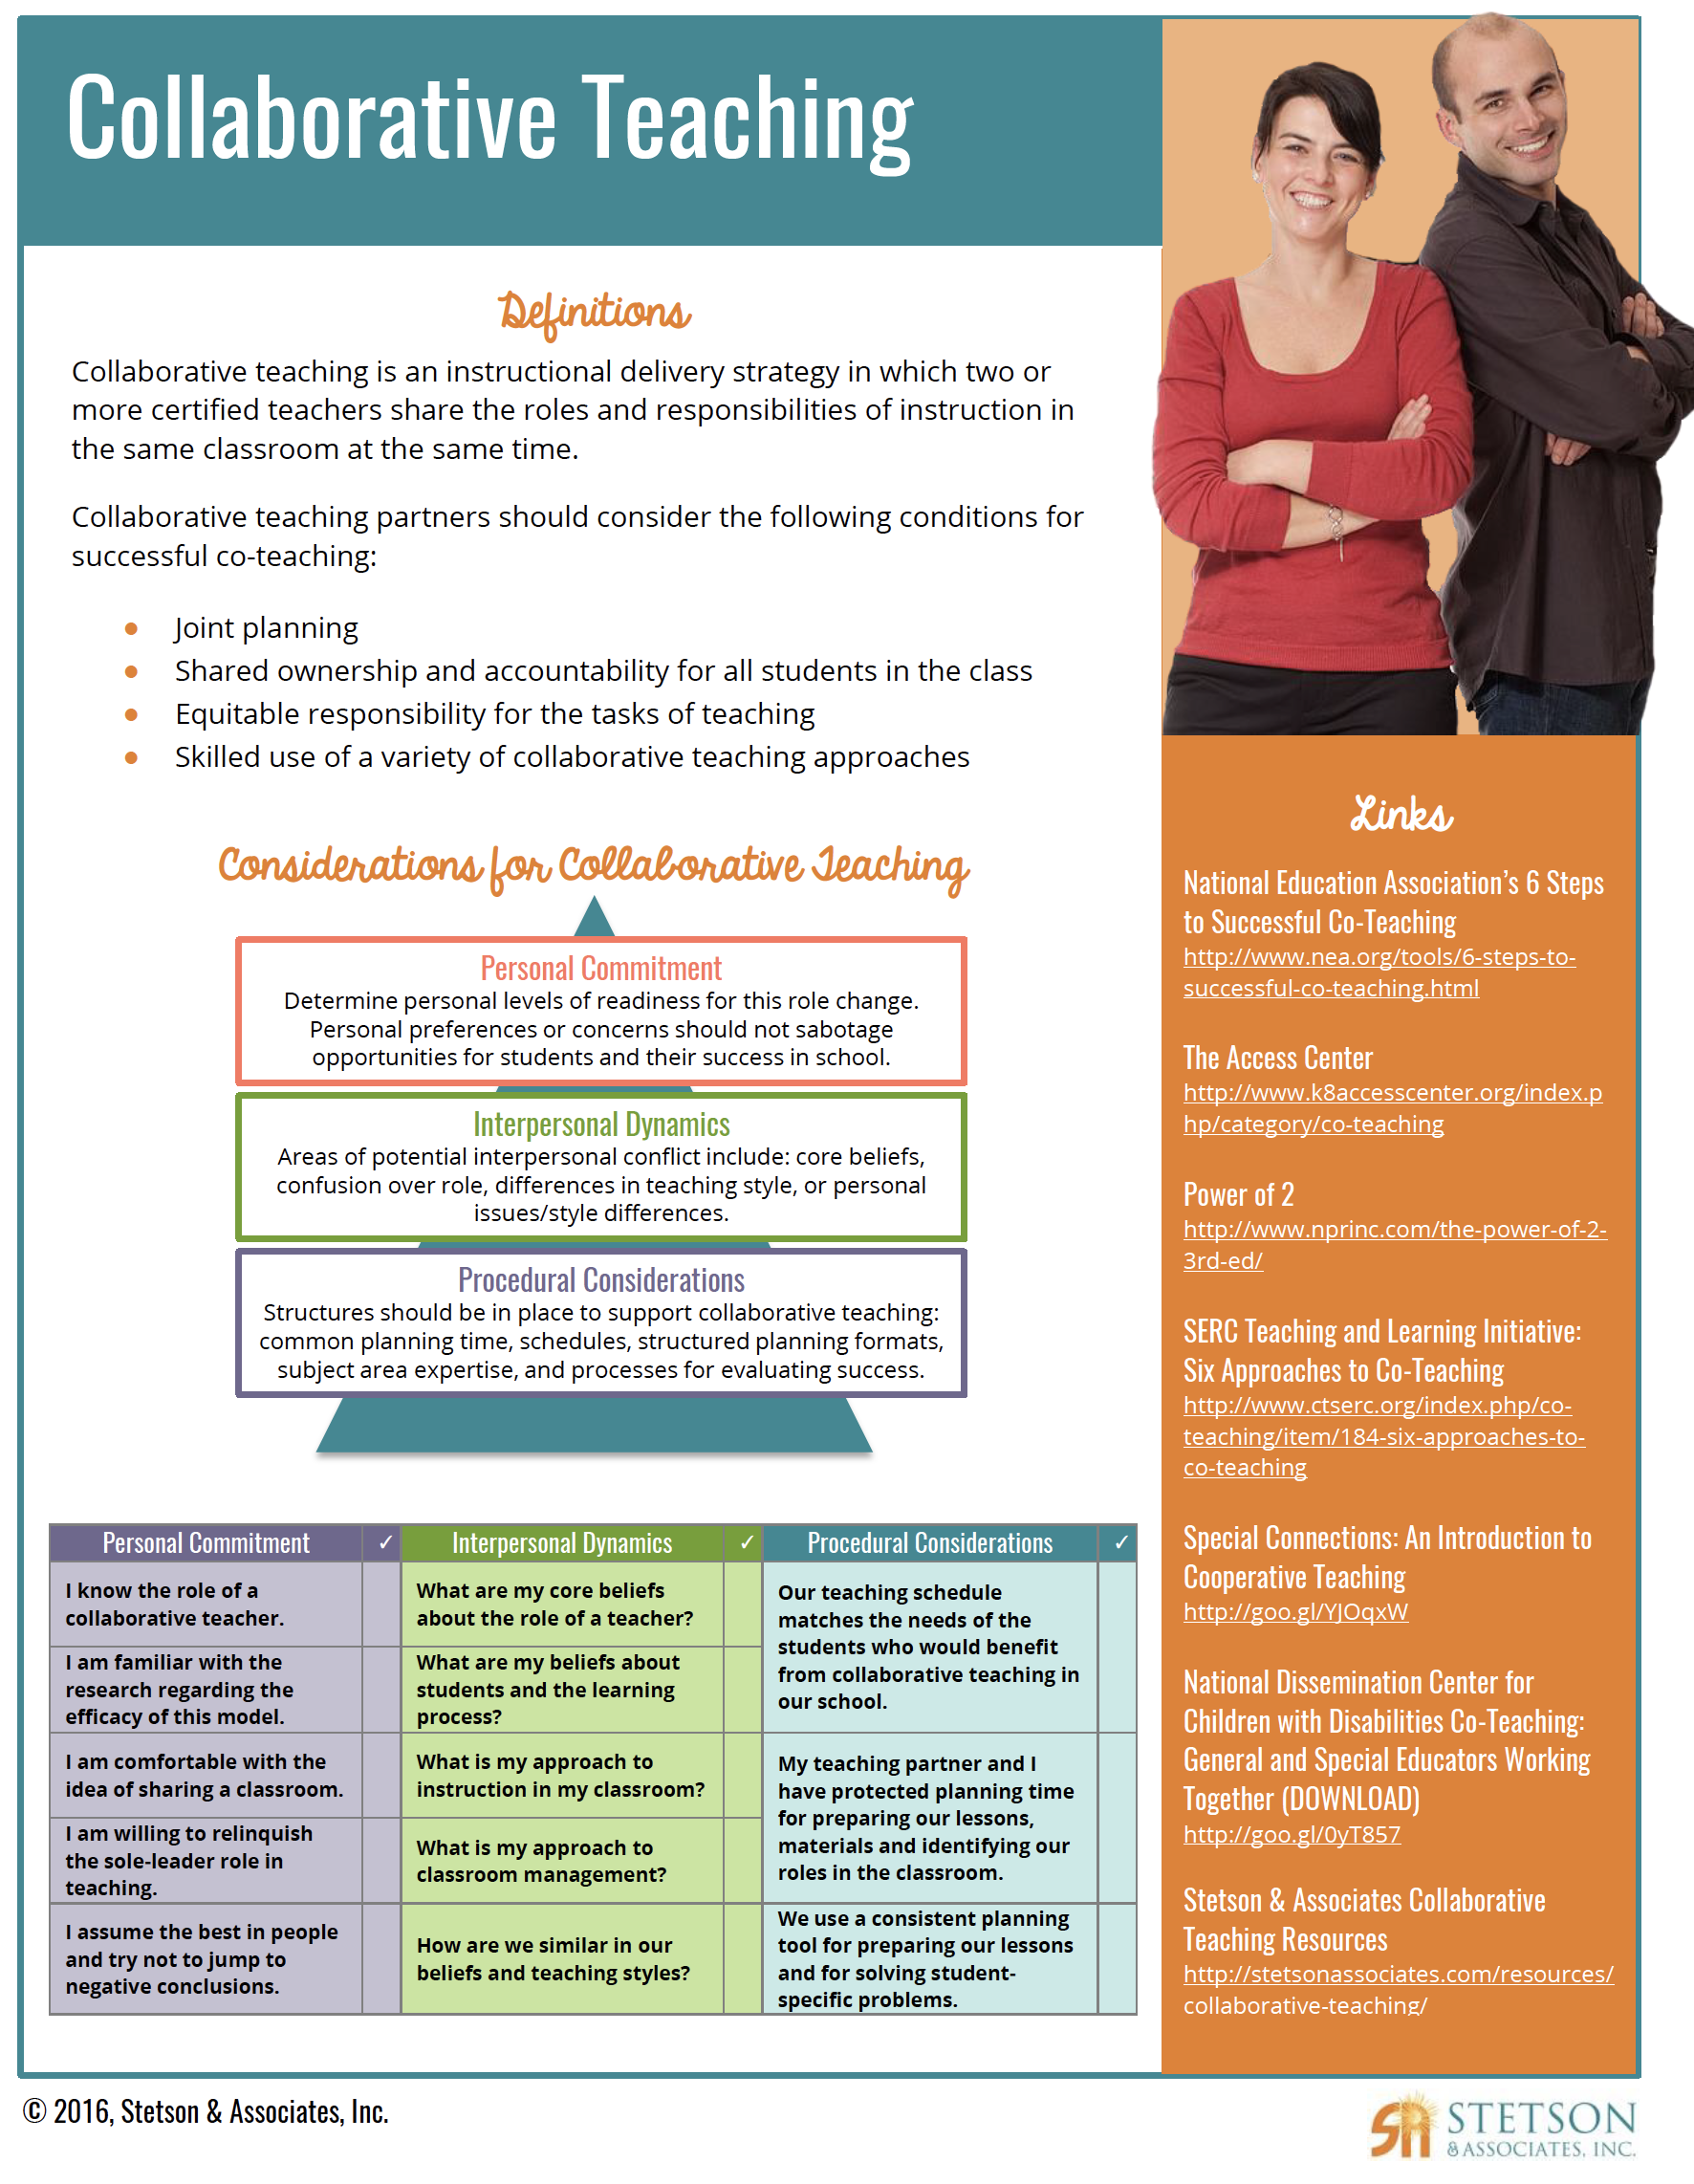 Collaborative Teaching Information Card 00053